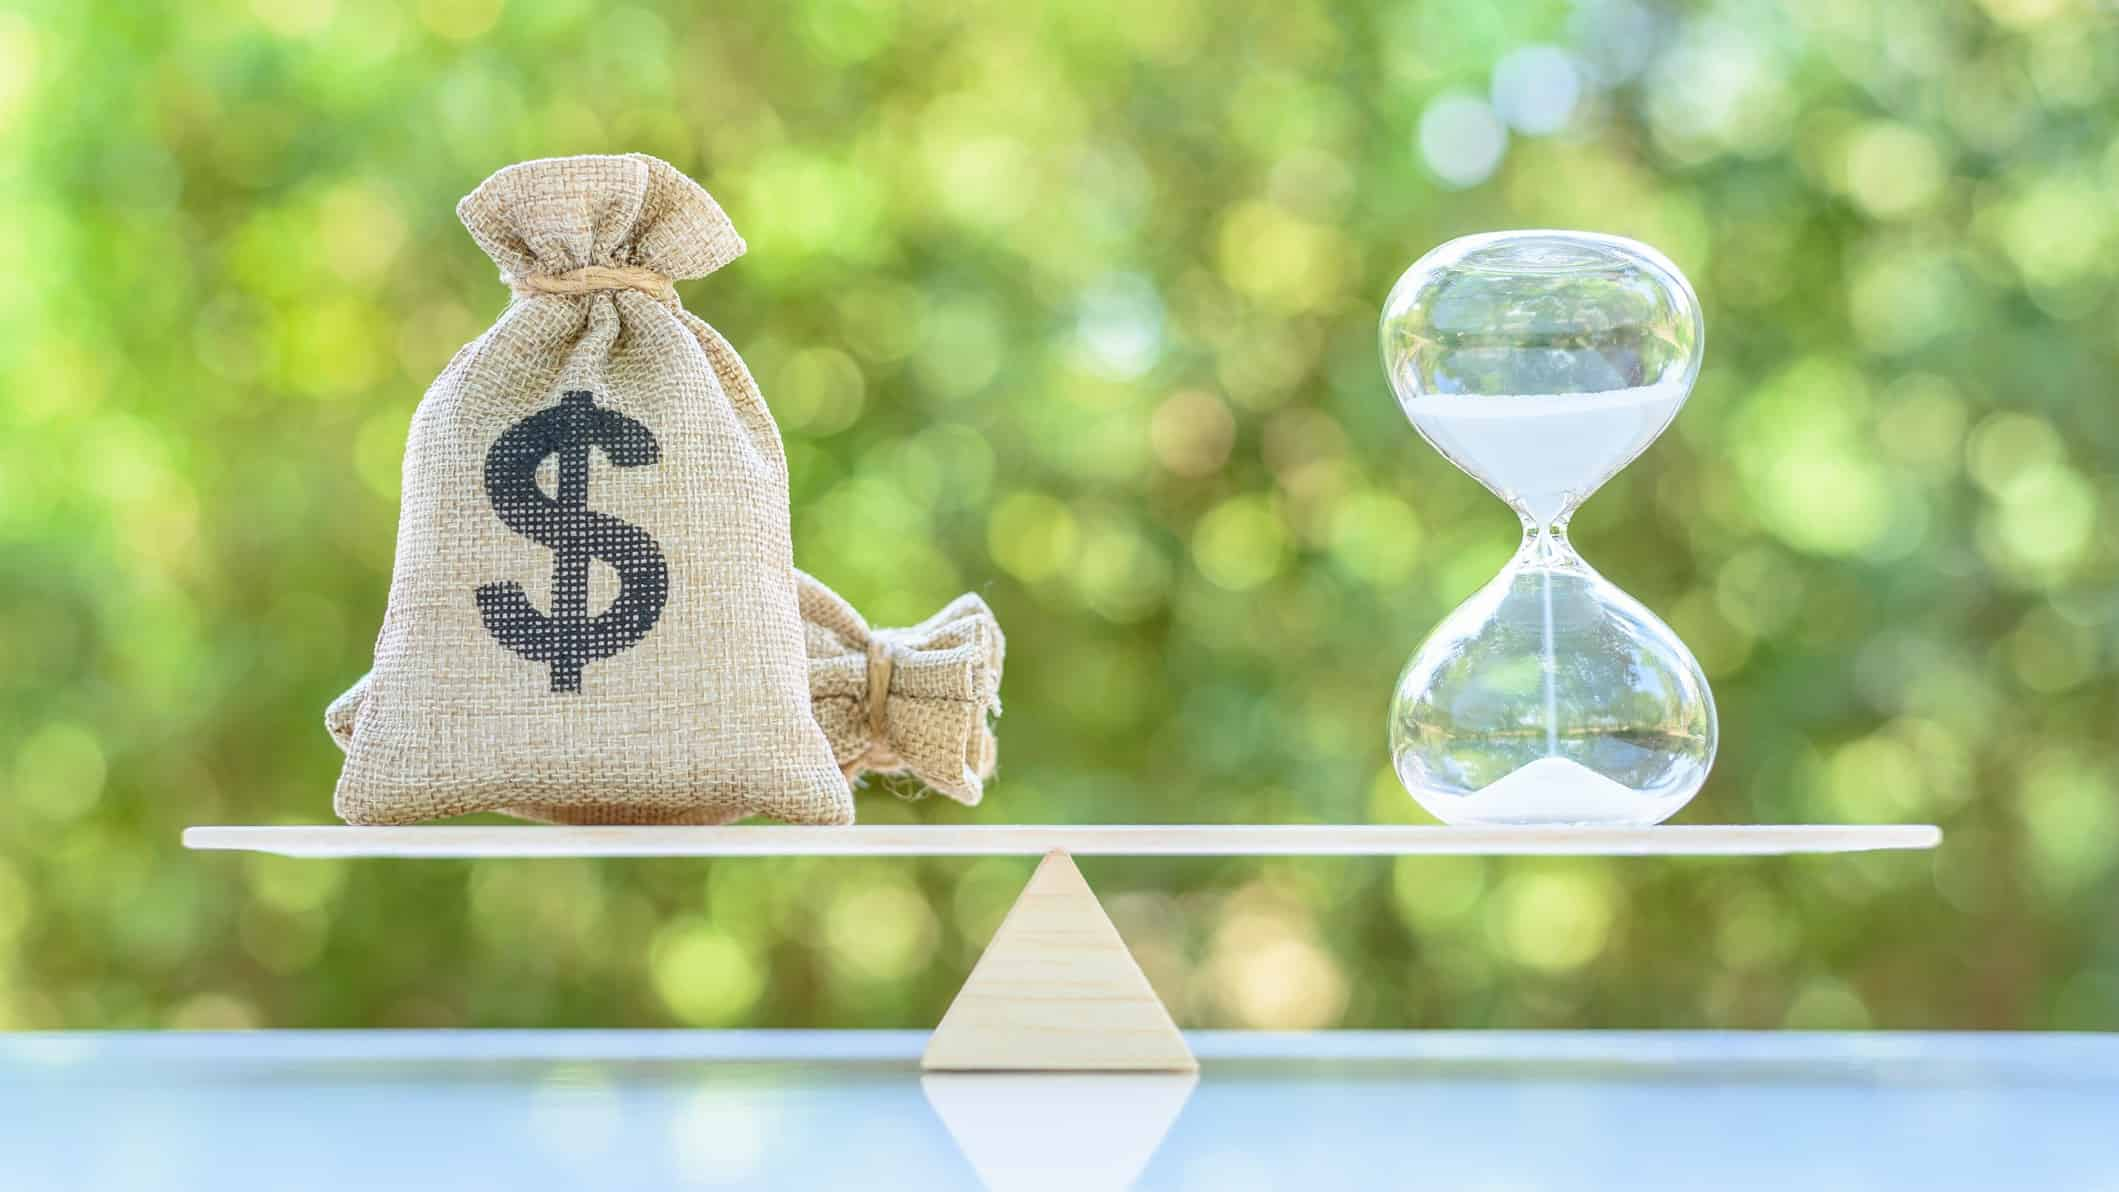 A set of scales with a bag of money balanced against a timer, indicating growth versus value shares